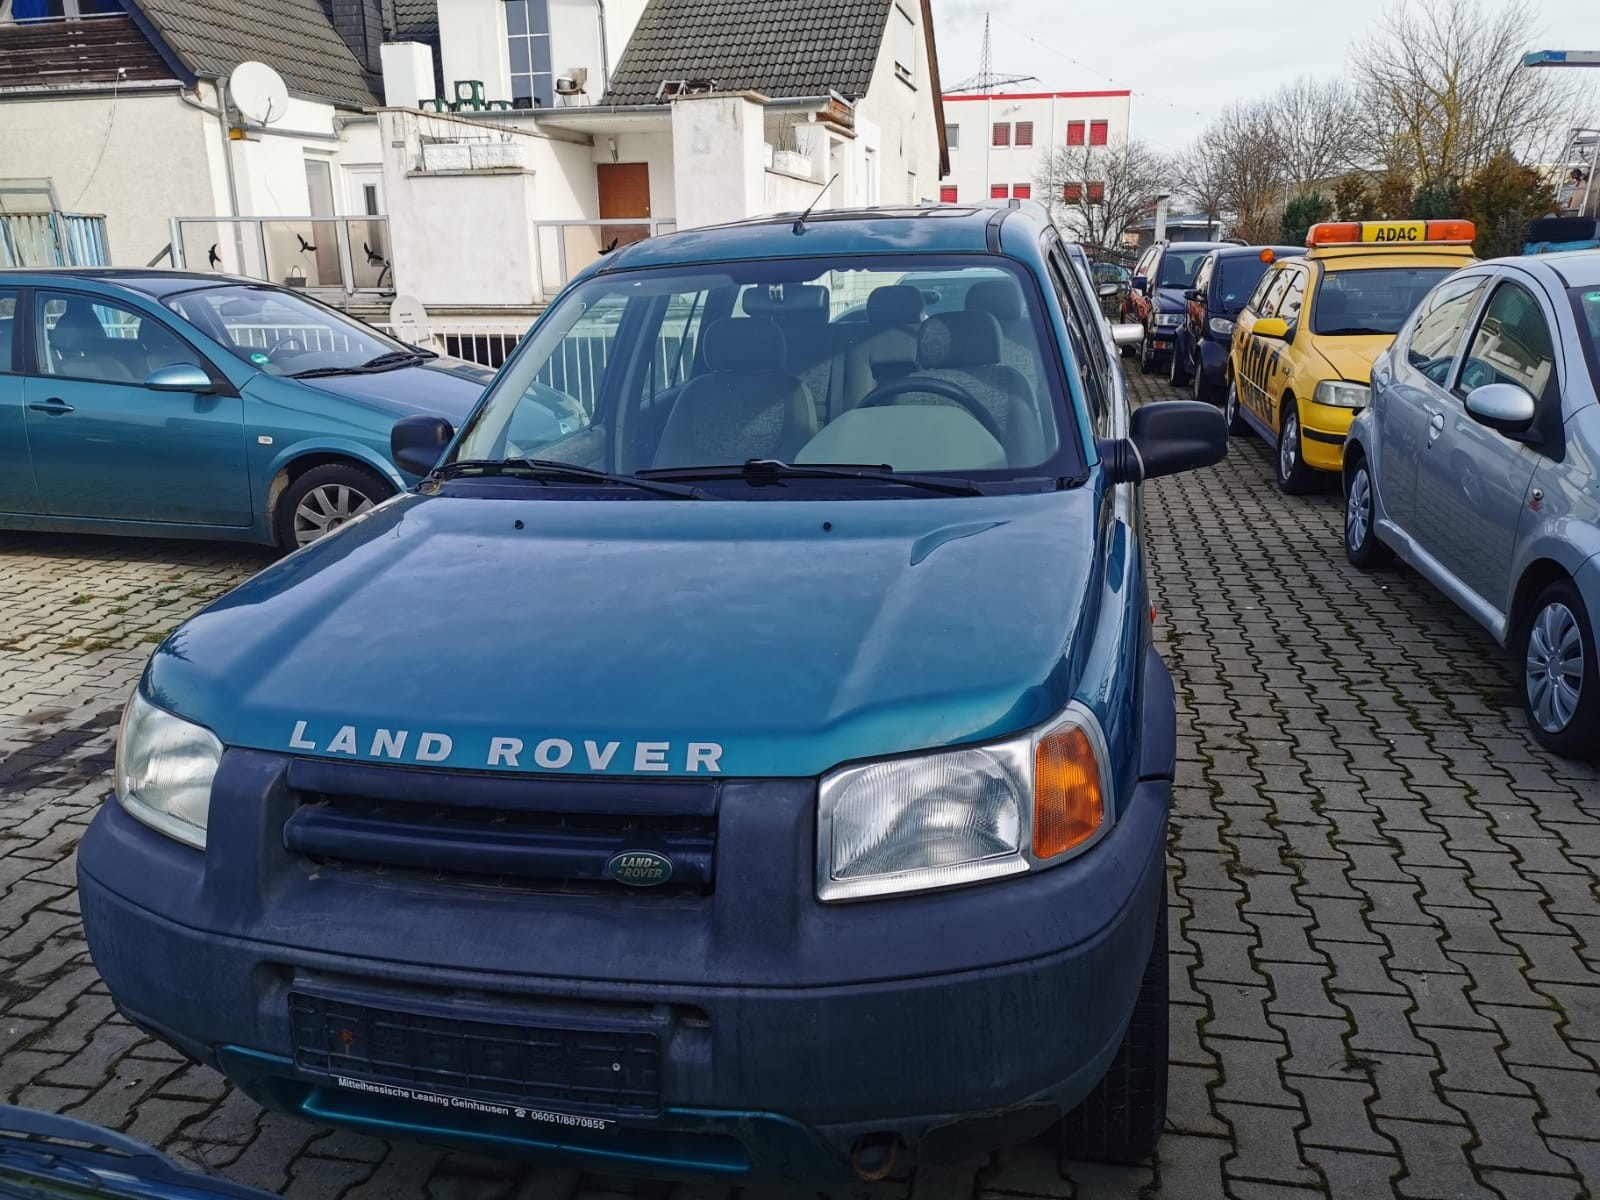 Landrover For Sale - LVFP55